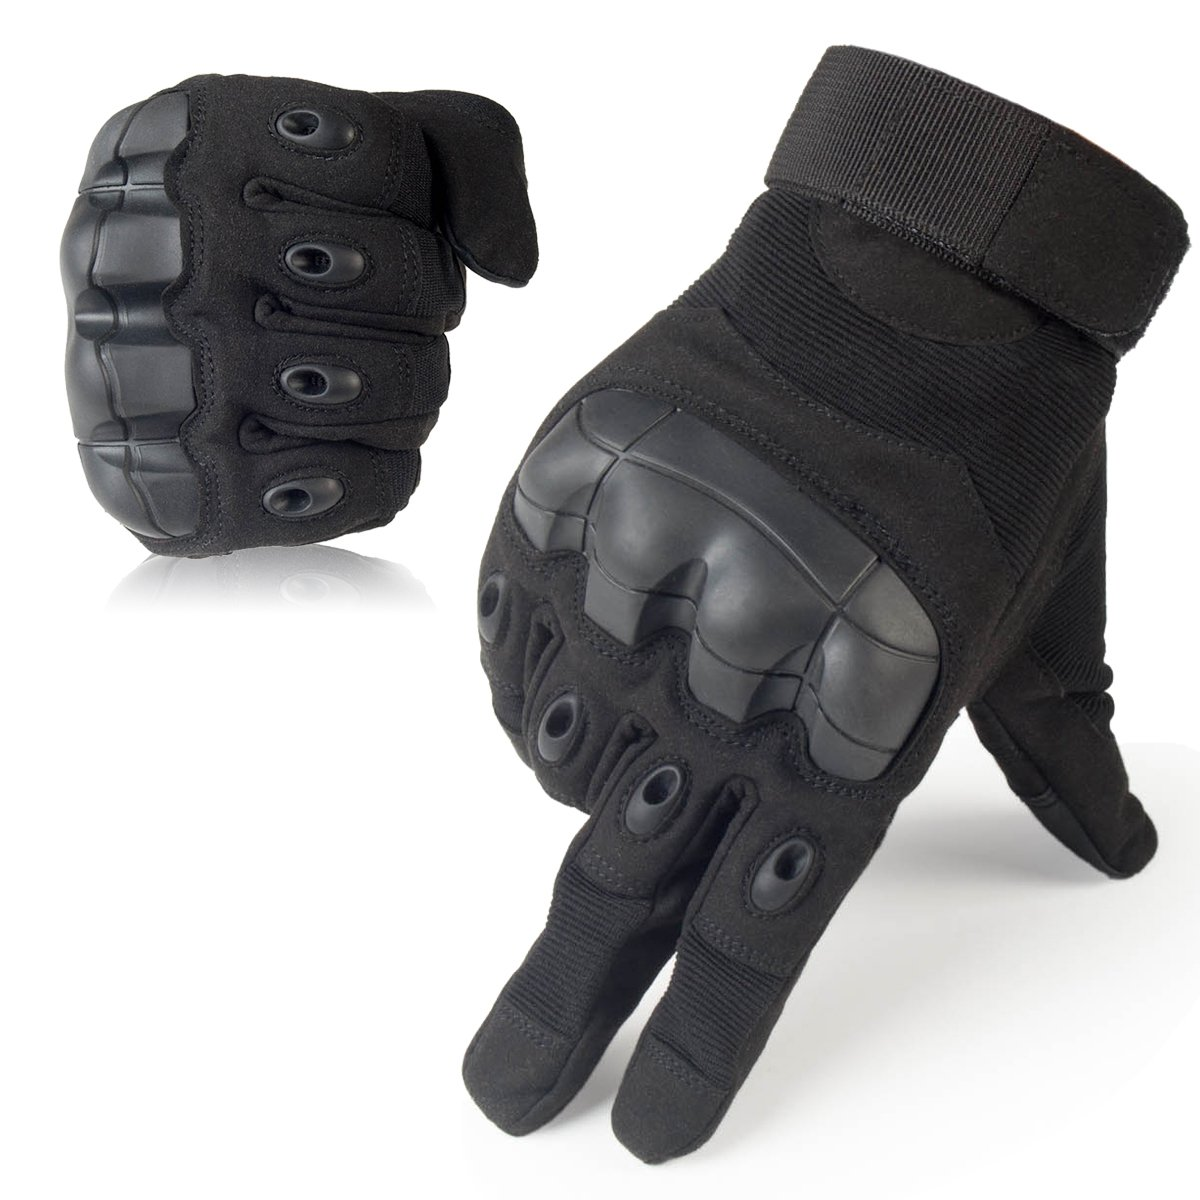 Motorcycle gloves smell -  Jiusy Military Rubber Hard Knuckle Tactical Gloves Full Finger Cycling Motorcycle Gloves